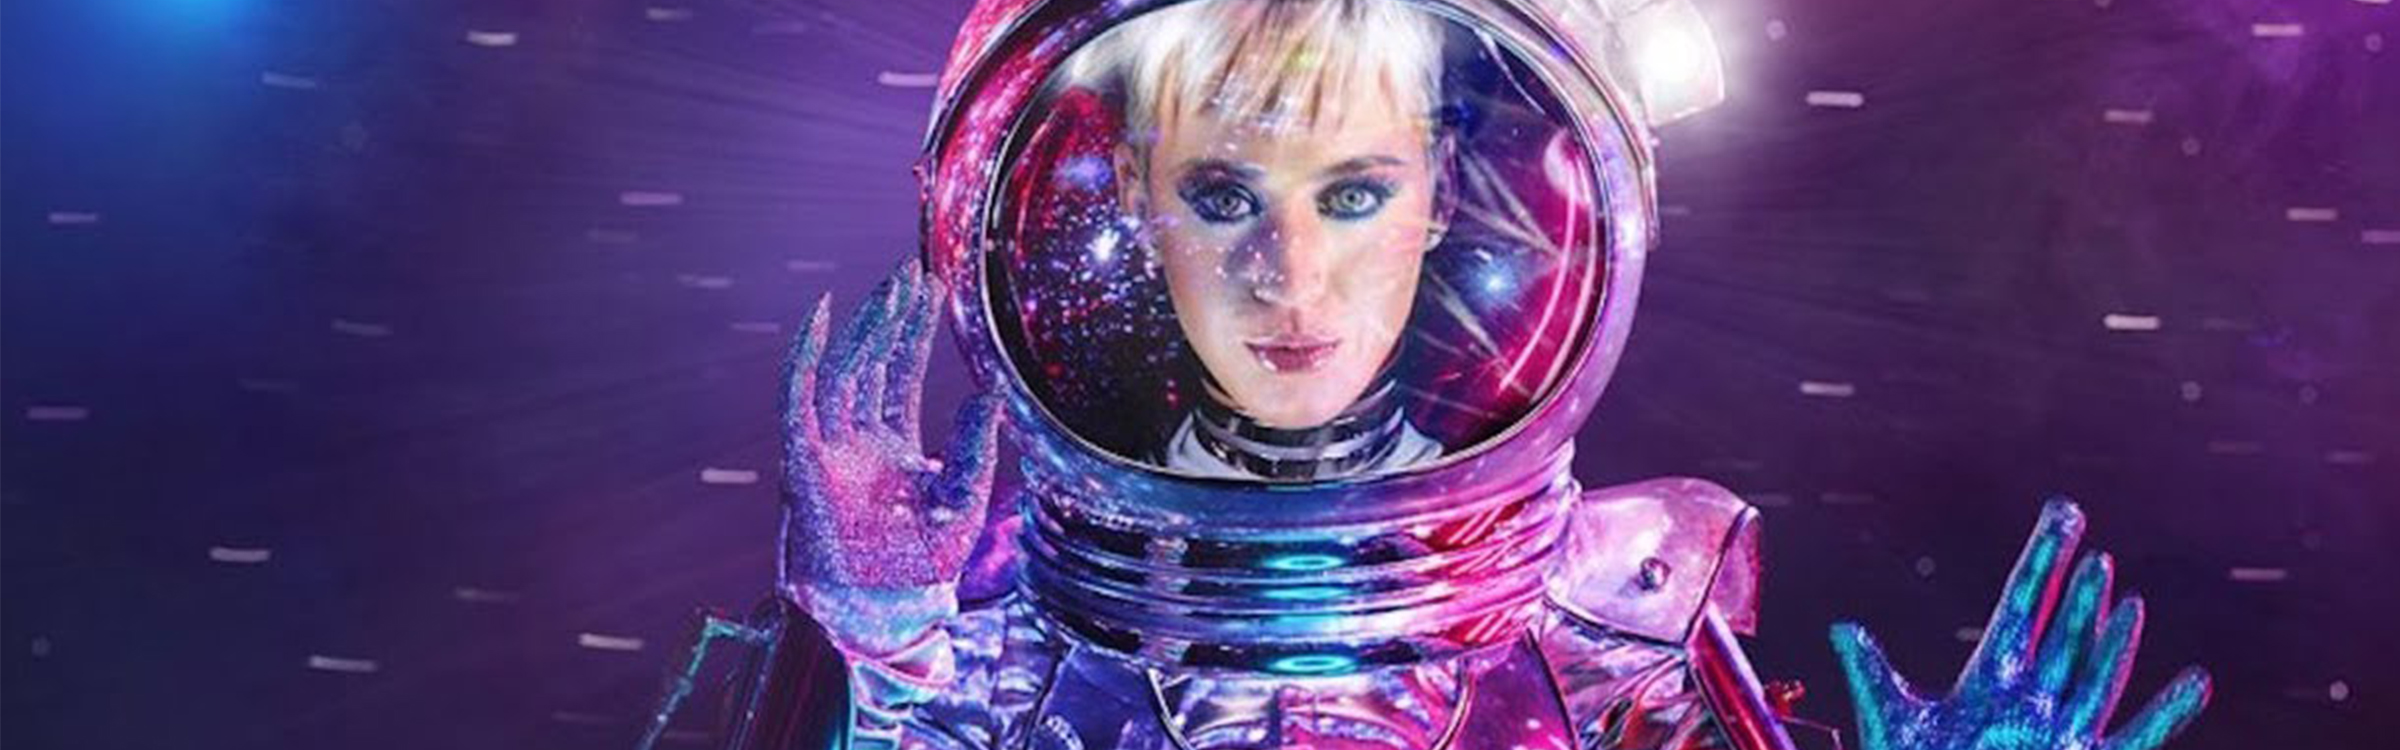 Katy perry vma header